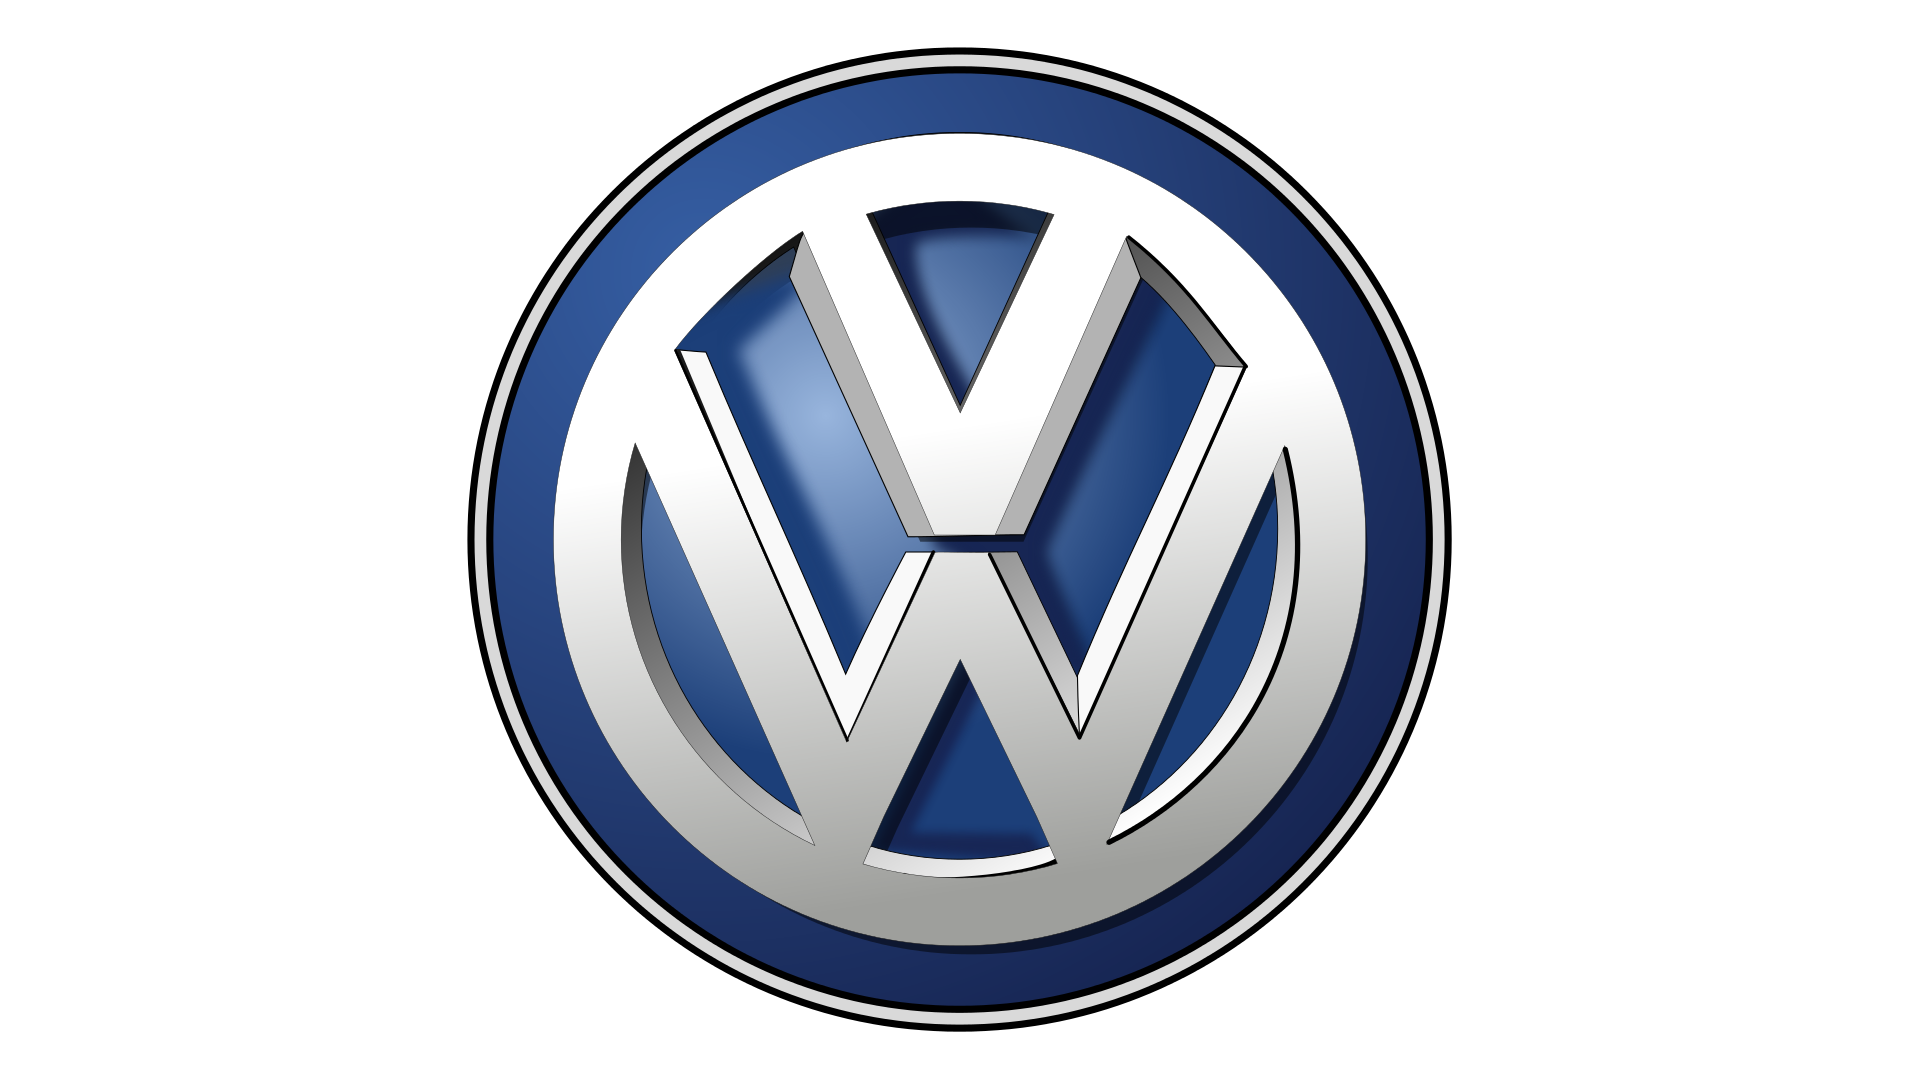 Volkswagen drawing symbol. Logo hd png meaning